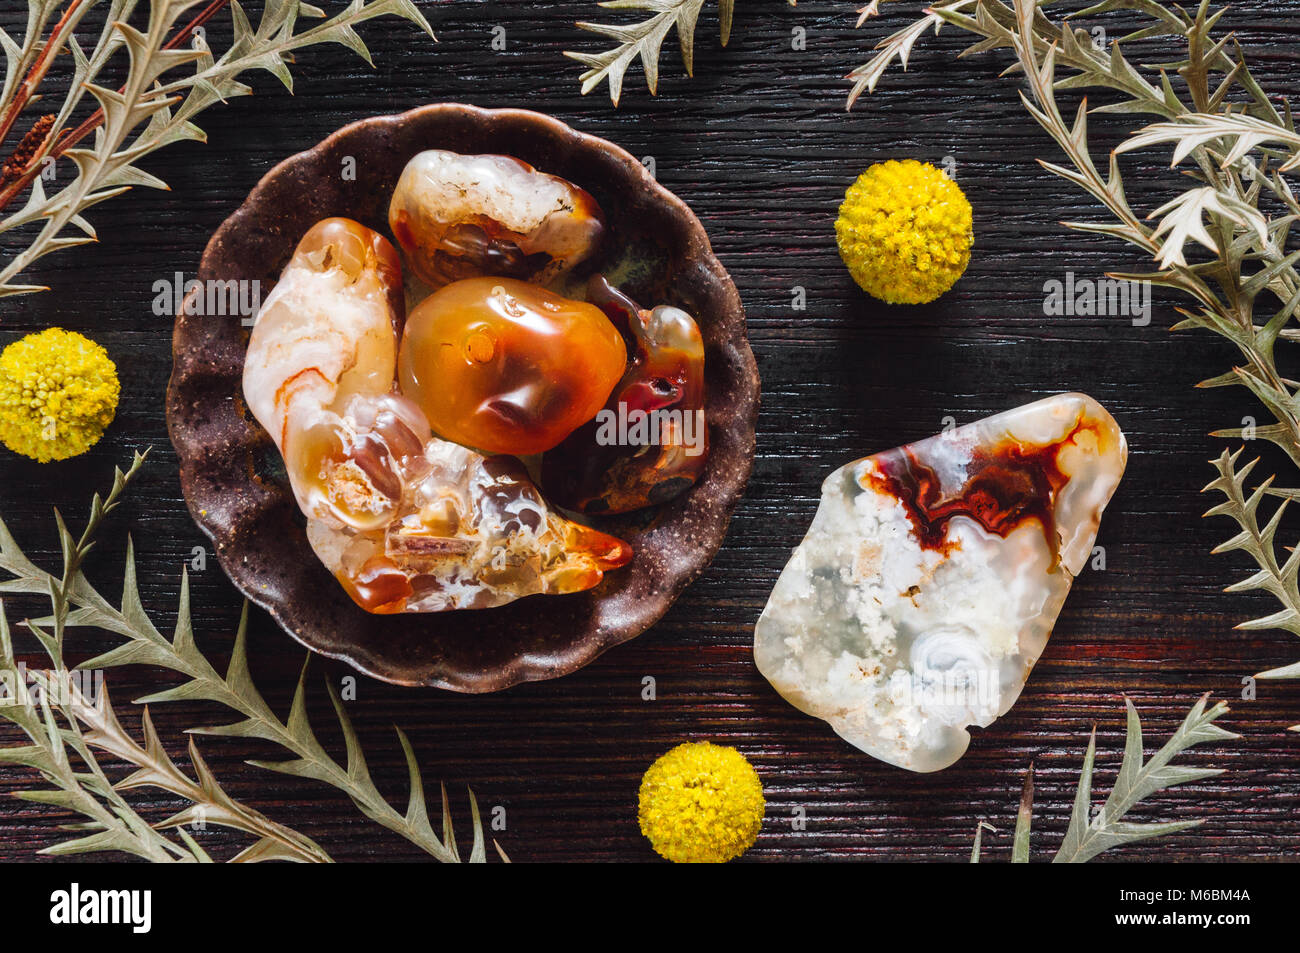 Fire Agate on Dark Table with Craspedia - Stock Image